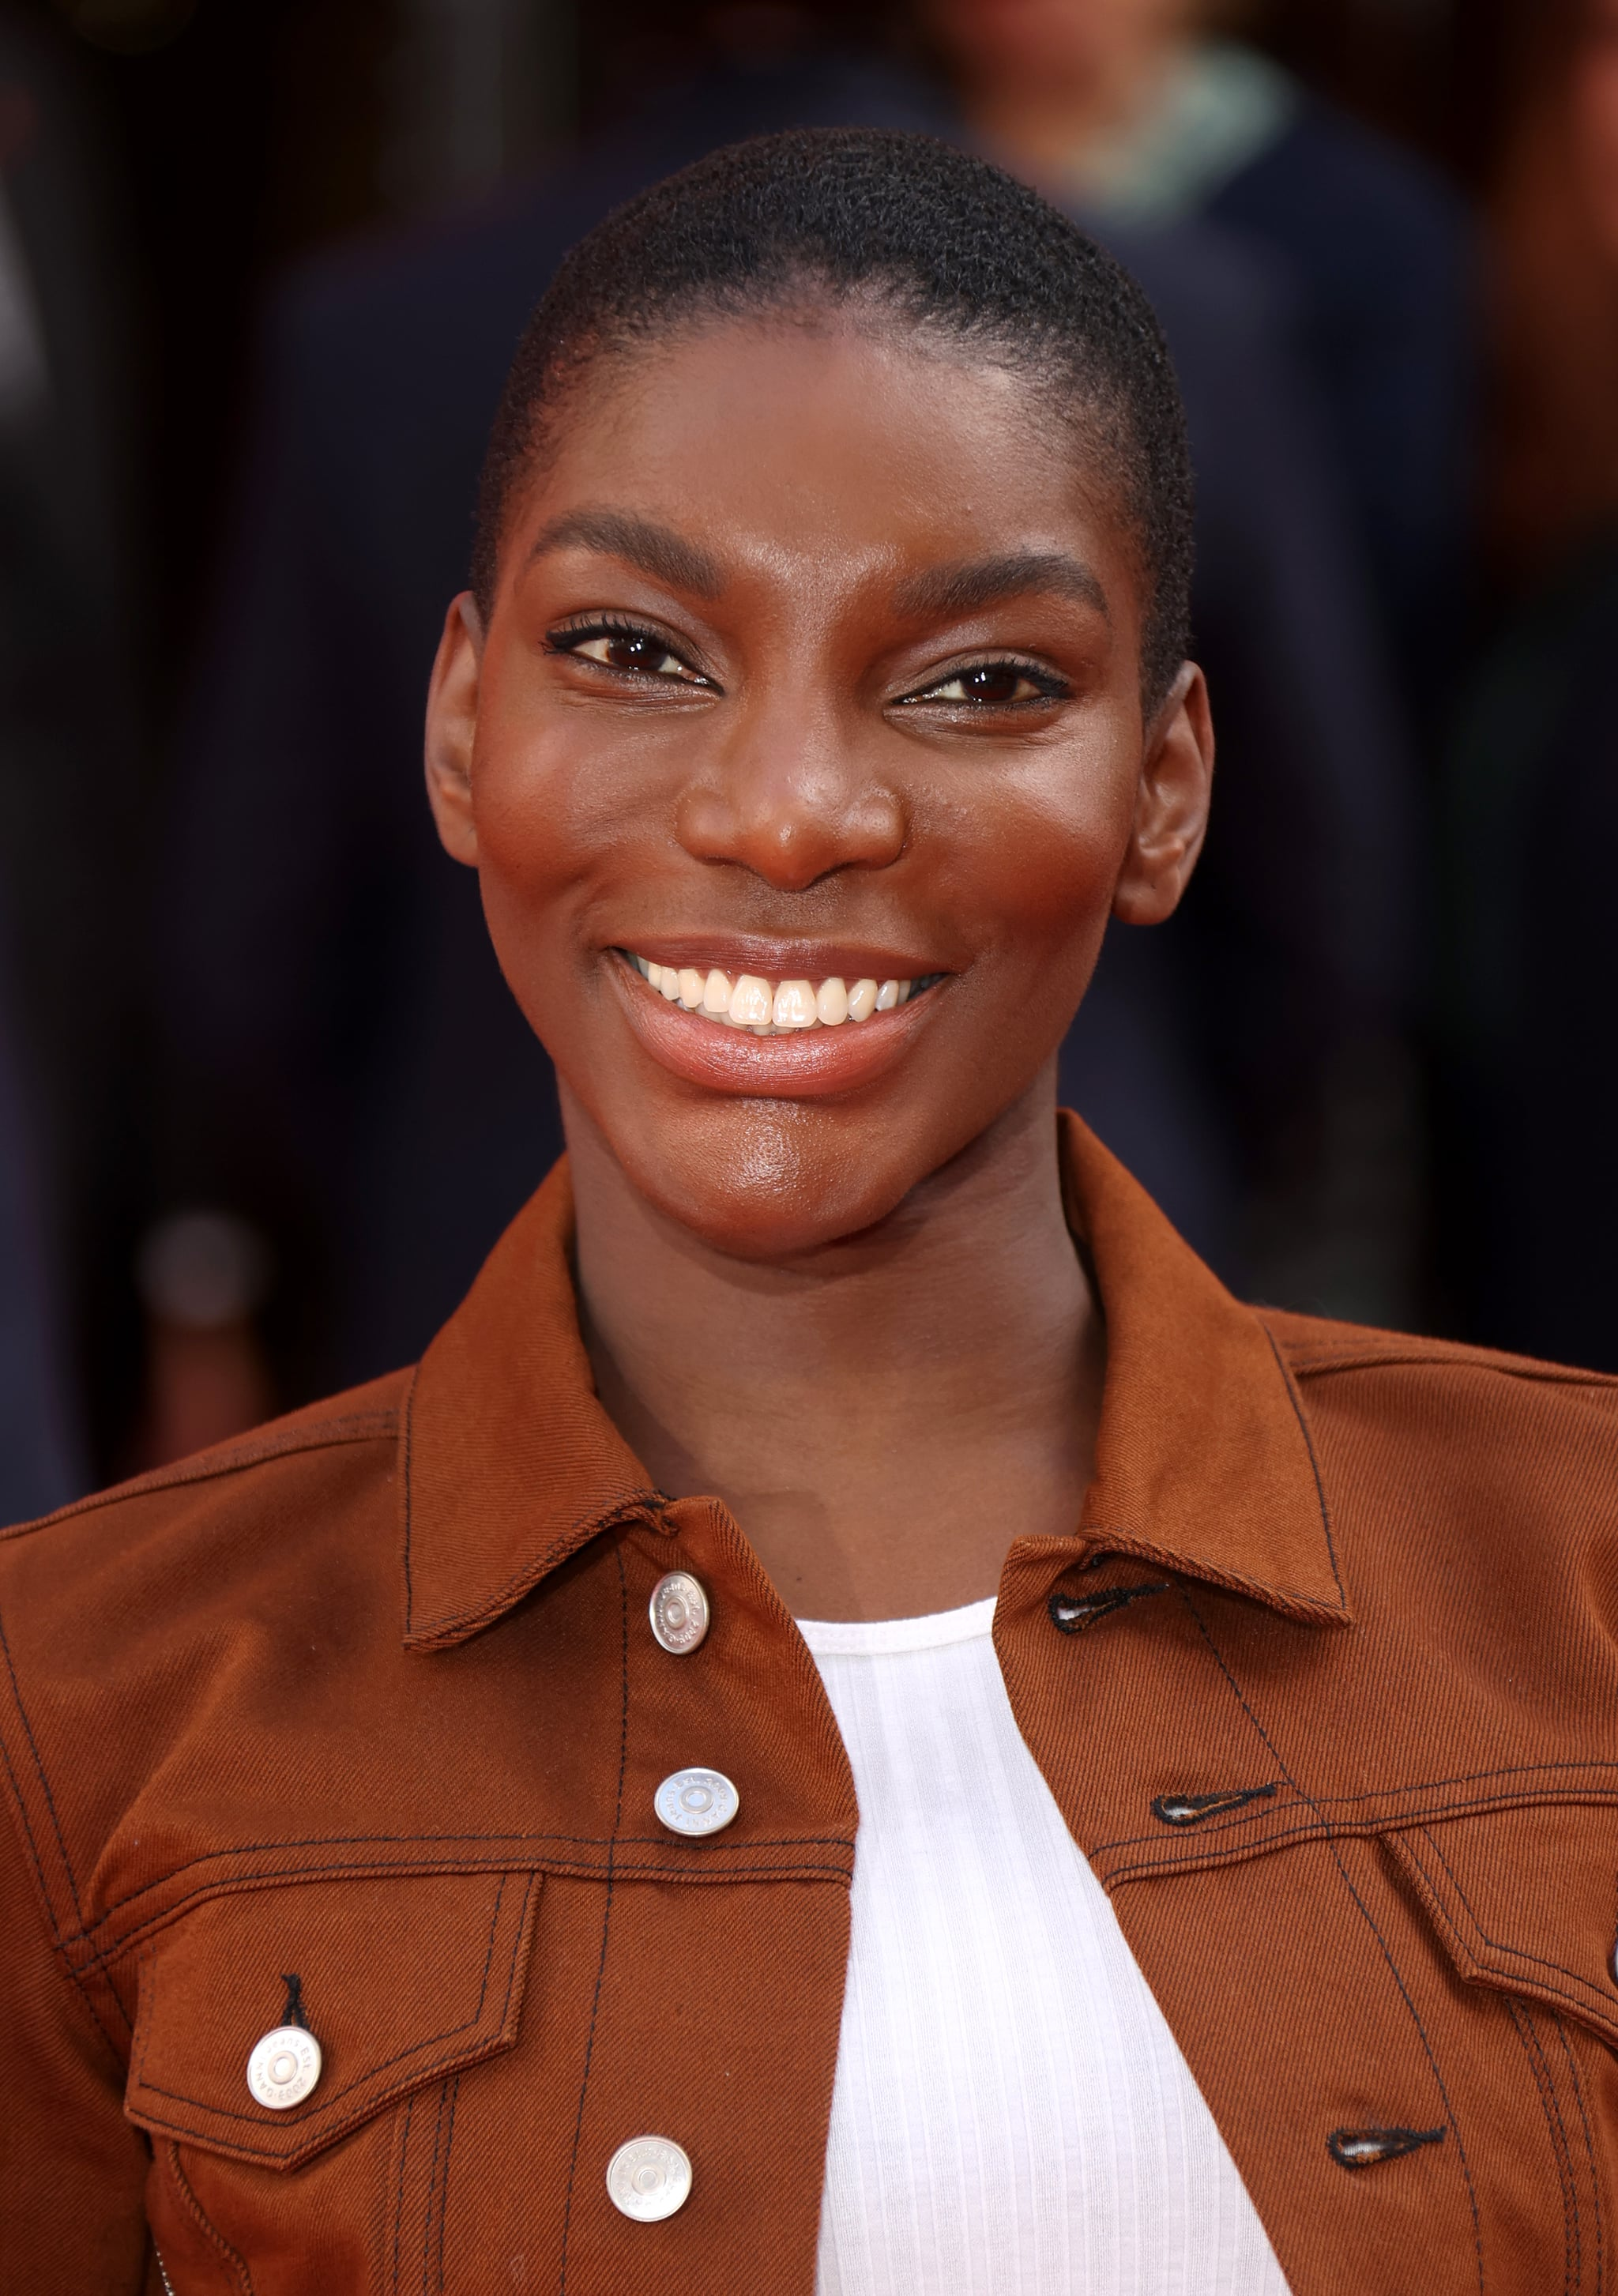 LONDON, ENGLAND - MARCH 11: Michaela Coel attends the Prince's Trust And TK Maxx & Homesense Awards at London Palladium on March 11, 2020 in London, England. (Photo by Mike Marsland/WireImage)